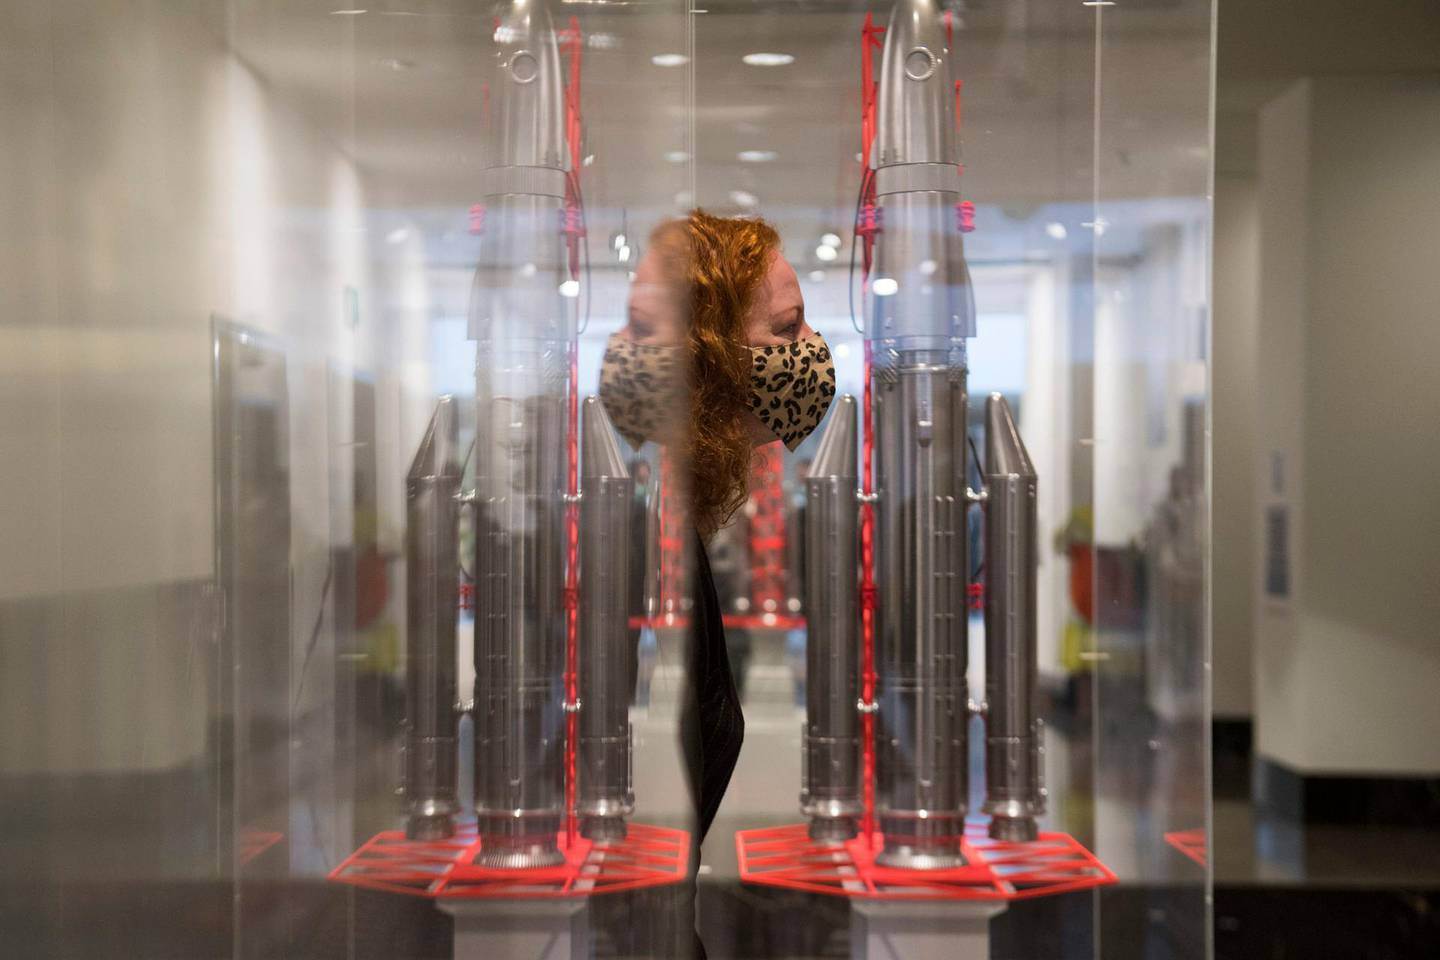 A gallery assistant walks past Gonogo by Goshka Macuga,  on display at the National Gallery, in London, one of the six artworks proposed as the next design for the Fourth Plinth at Trafalgar Square, in London, Monday May 24, 2021. (Kirsty O'Connor/PA via AP)